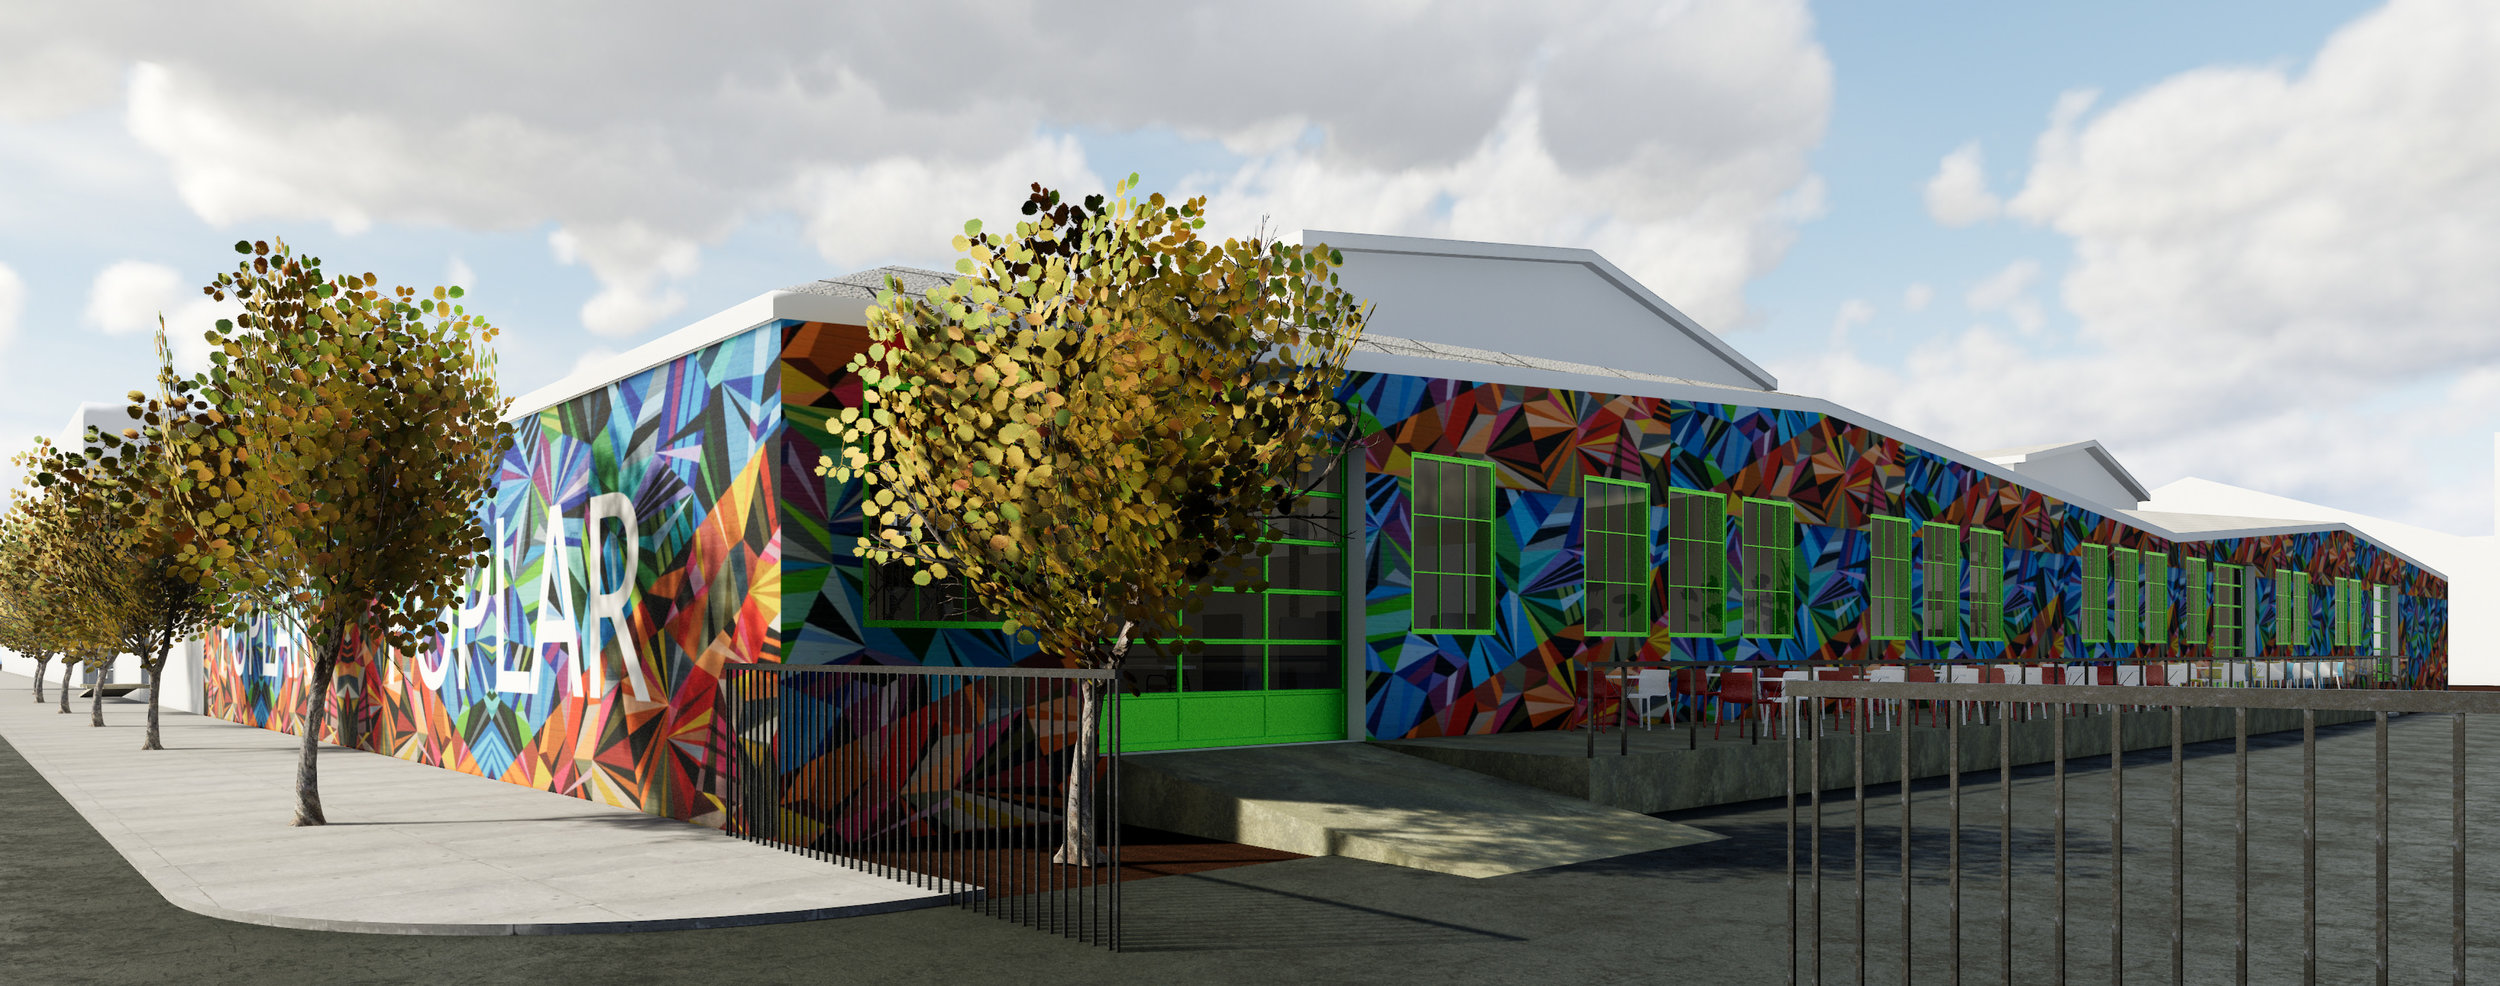 A vibrant paint scheme to show the concept of how the facade could look with a full wall mural.